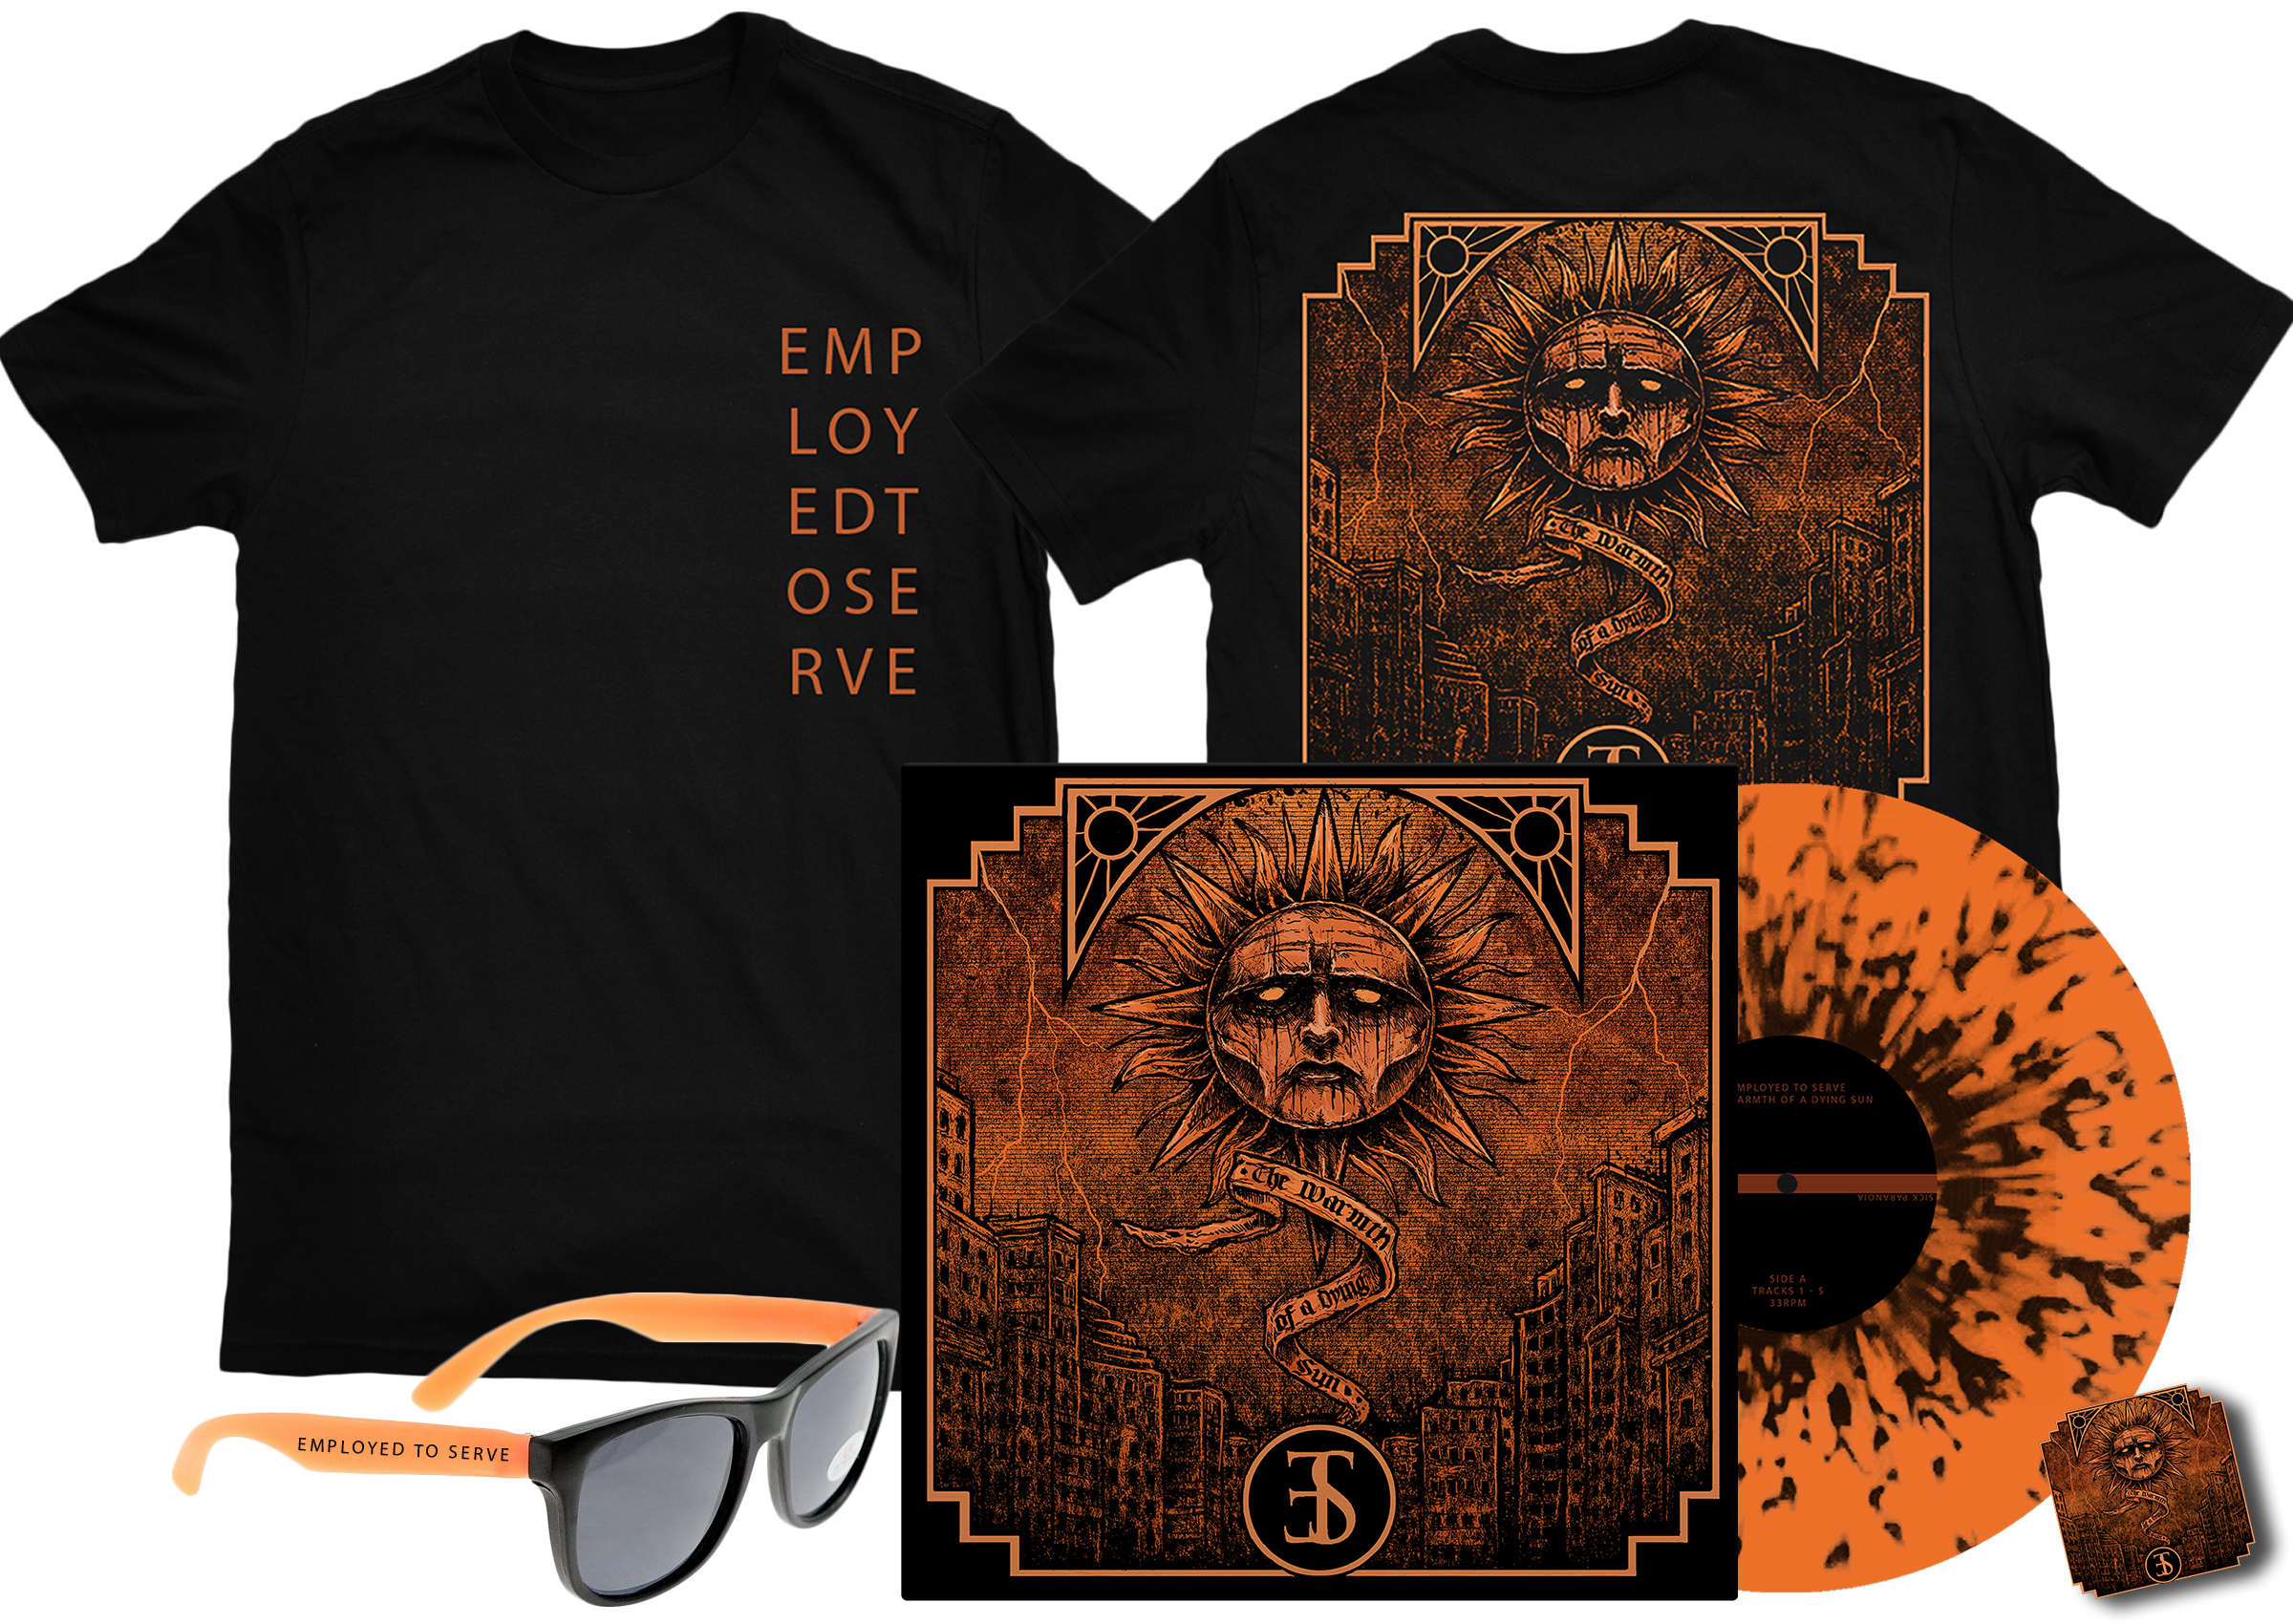 Employed To Serve - The Warmth Of A Dying Sun black shirt + sunglasses + pin badge + LP PREORDER